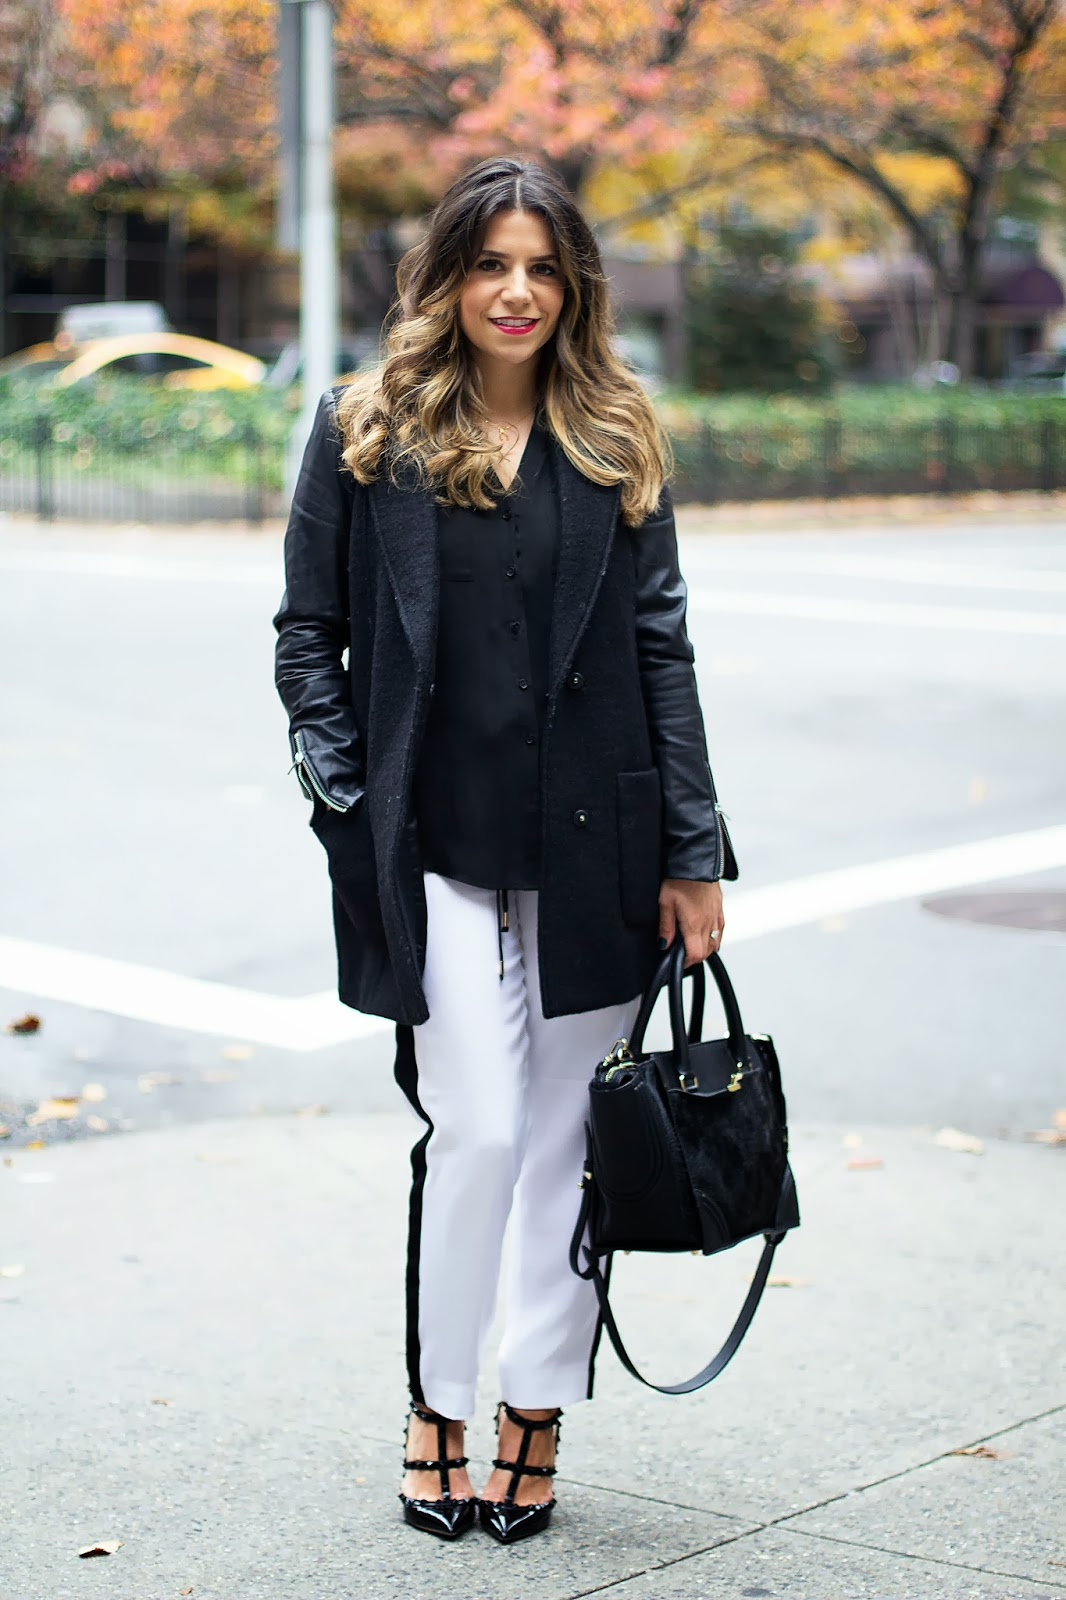 black; nyblogger; zara coat; express fashion; fashion blogger; track pants; valentino rockstud heels; valentino; valentino rockstud; michael kors; zara bag; black outfit; fall fashion; what to wear in NYC;